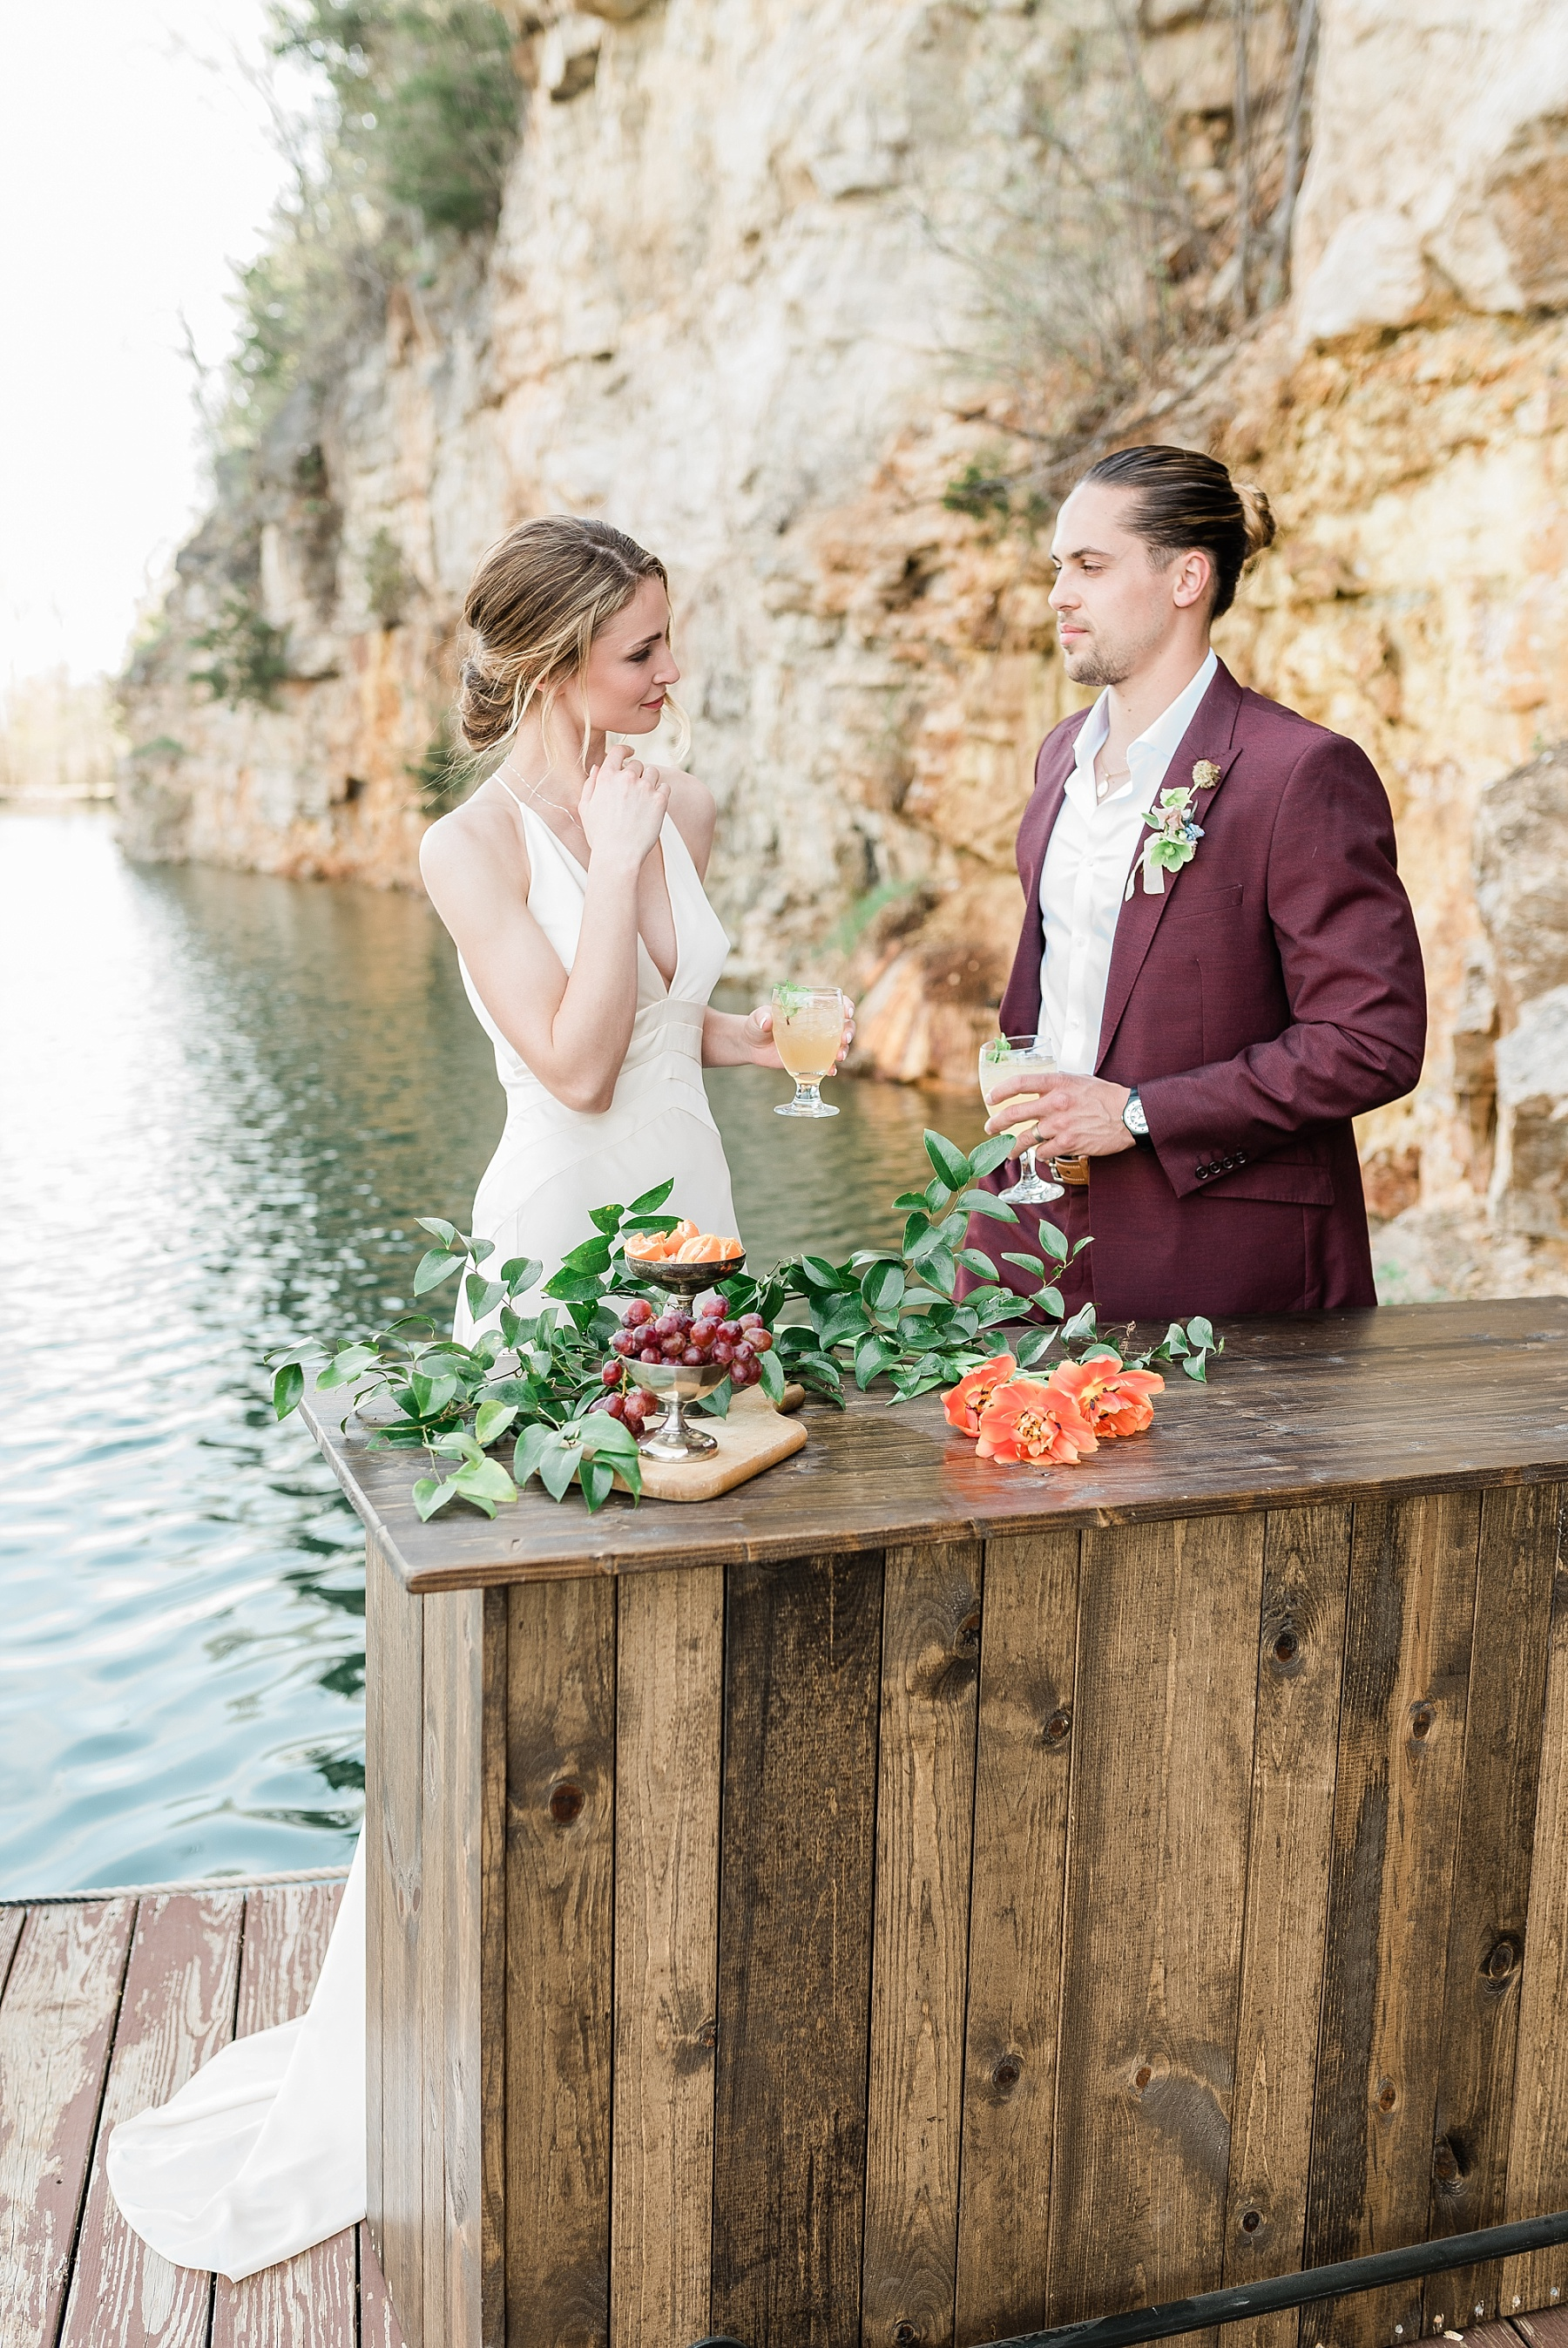 Intimate Spanish and French Inspired Destination Wedding with Lakeside Dinner Party at Dusk at Wildcliff by Kelsi Kliethermes Photography Best Missouri and Maui Wedding Photographer_0059.jpg